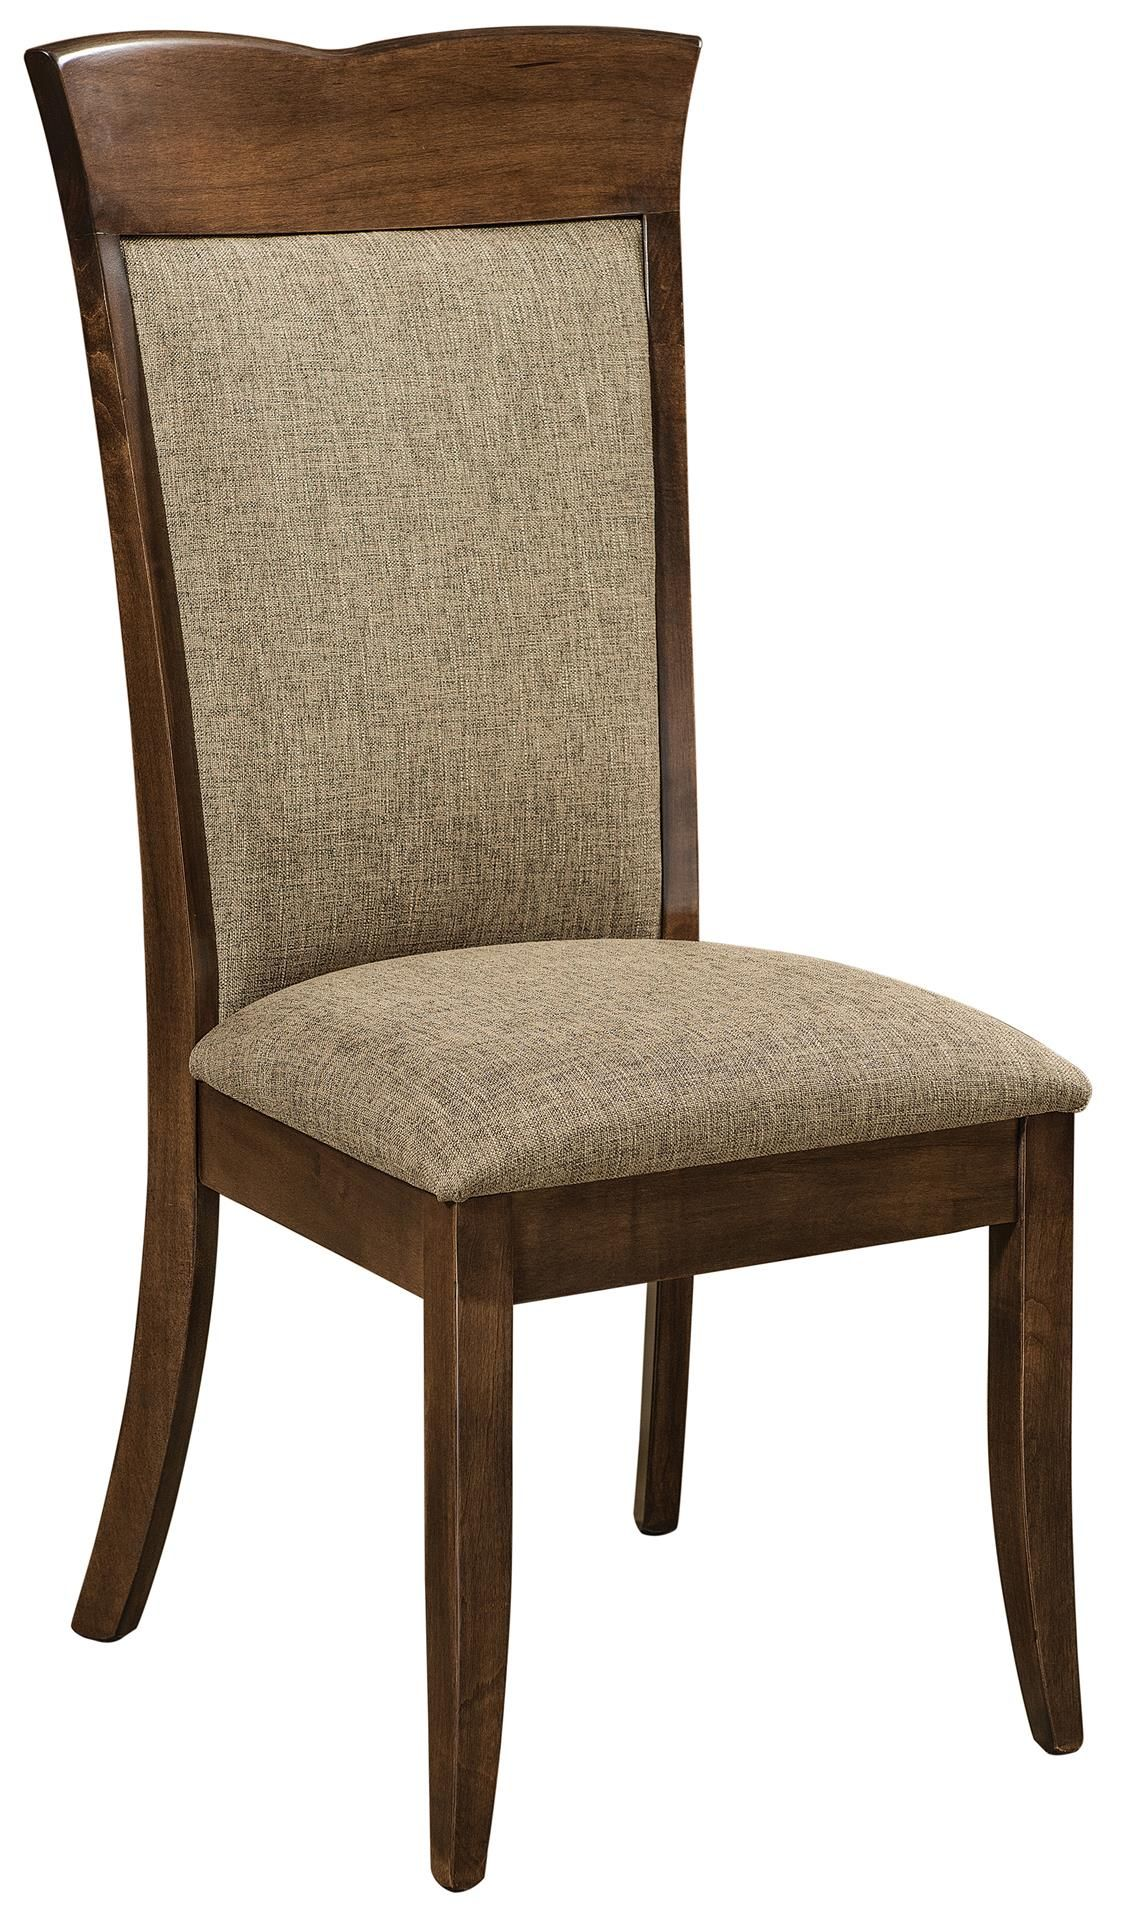 Amish Sante Fe Dining Chair Dining Room Chairs Upholstered Dining Room Chairs Modern Dining Chairs